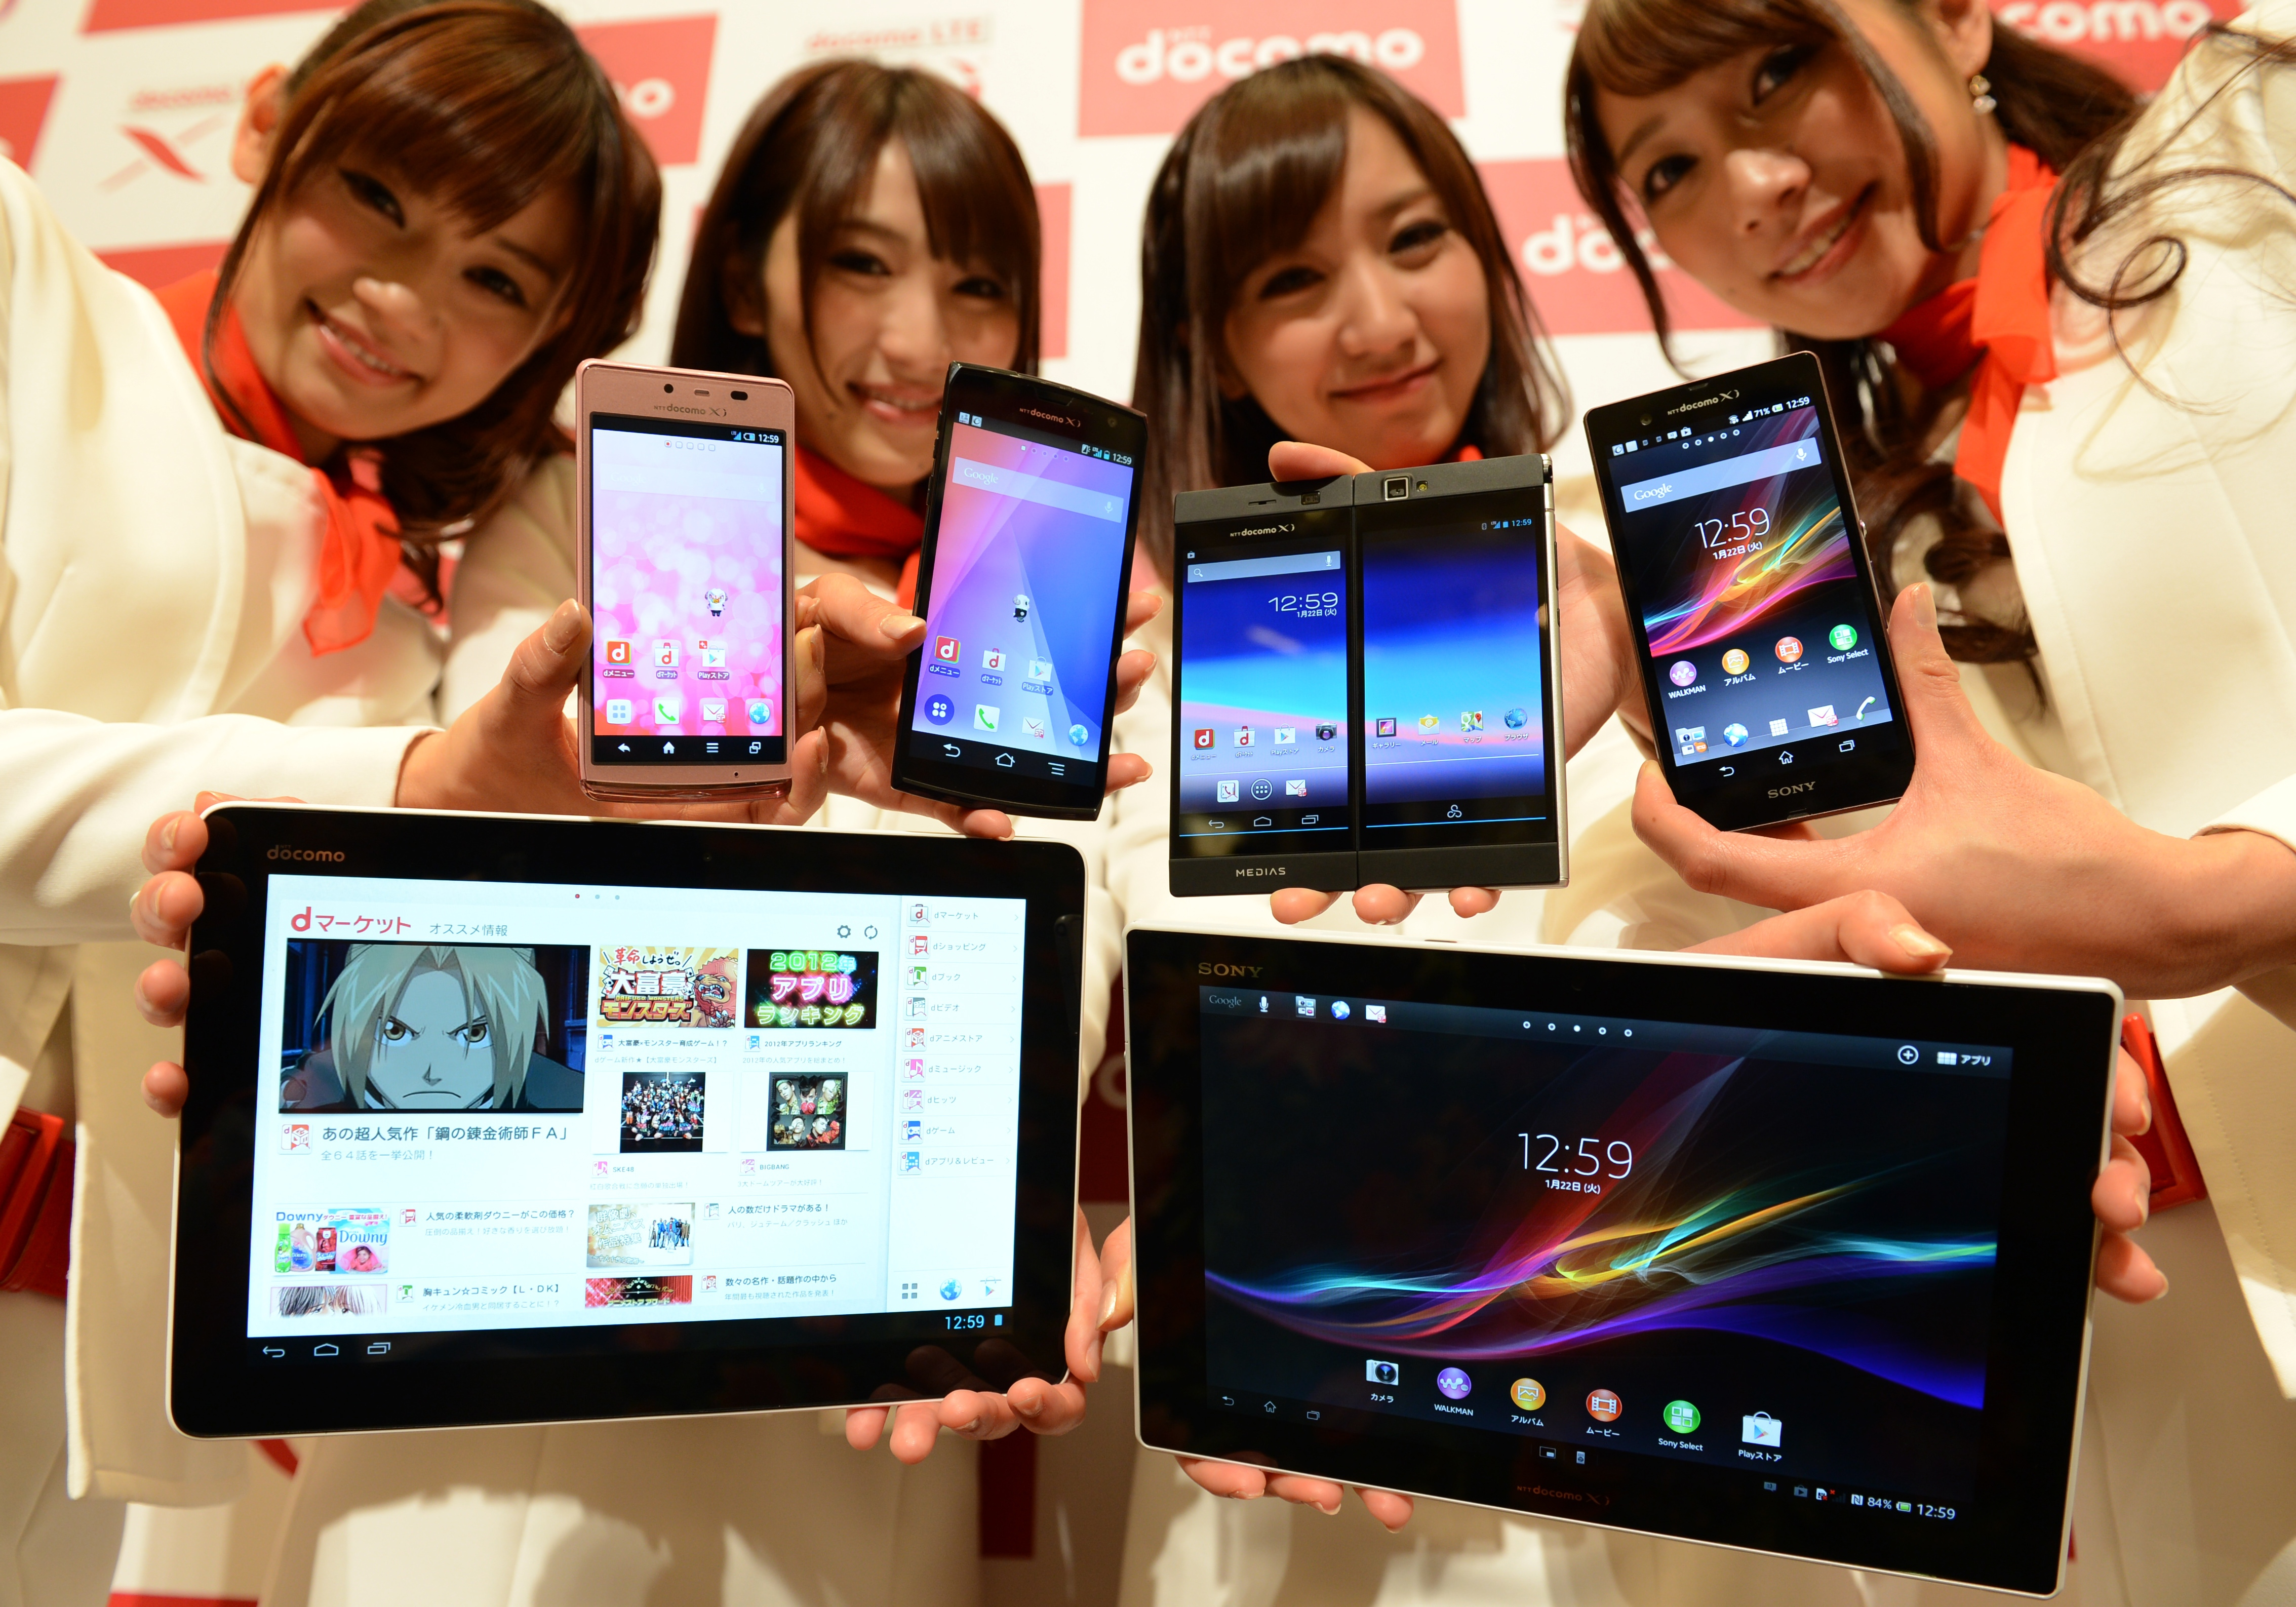 Q1 2014 Tablet Shipments: Android 65.8%, iOS 28.4%, Windows 5.8%